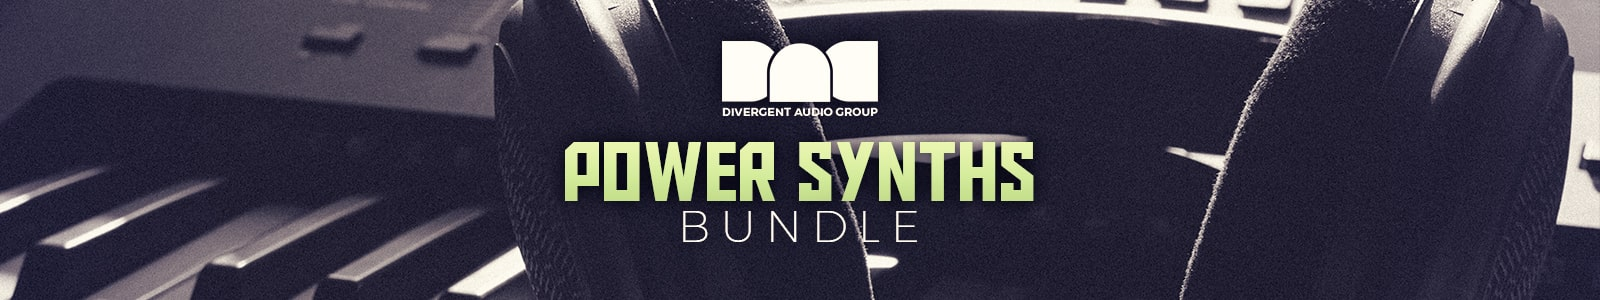 power synths bundle